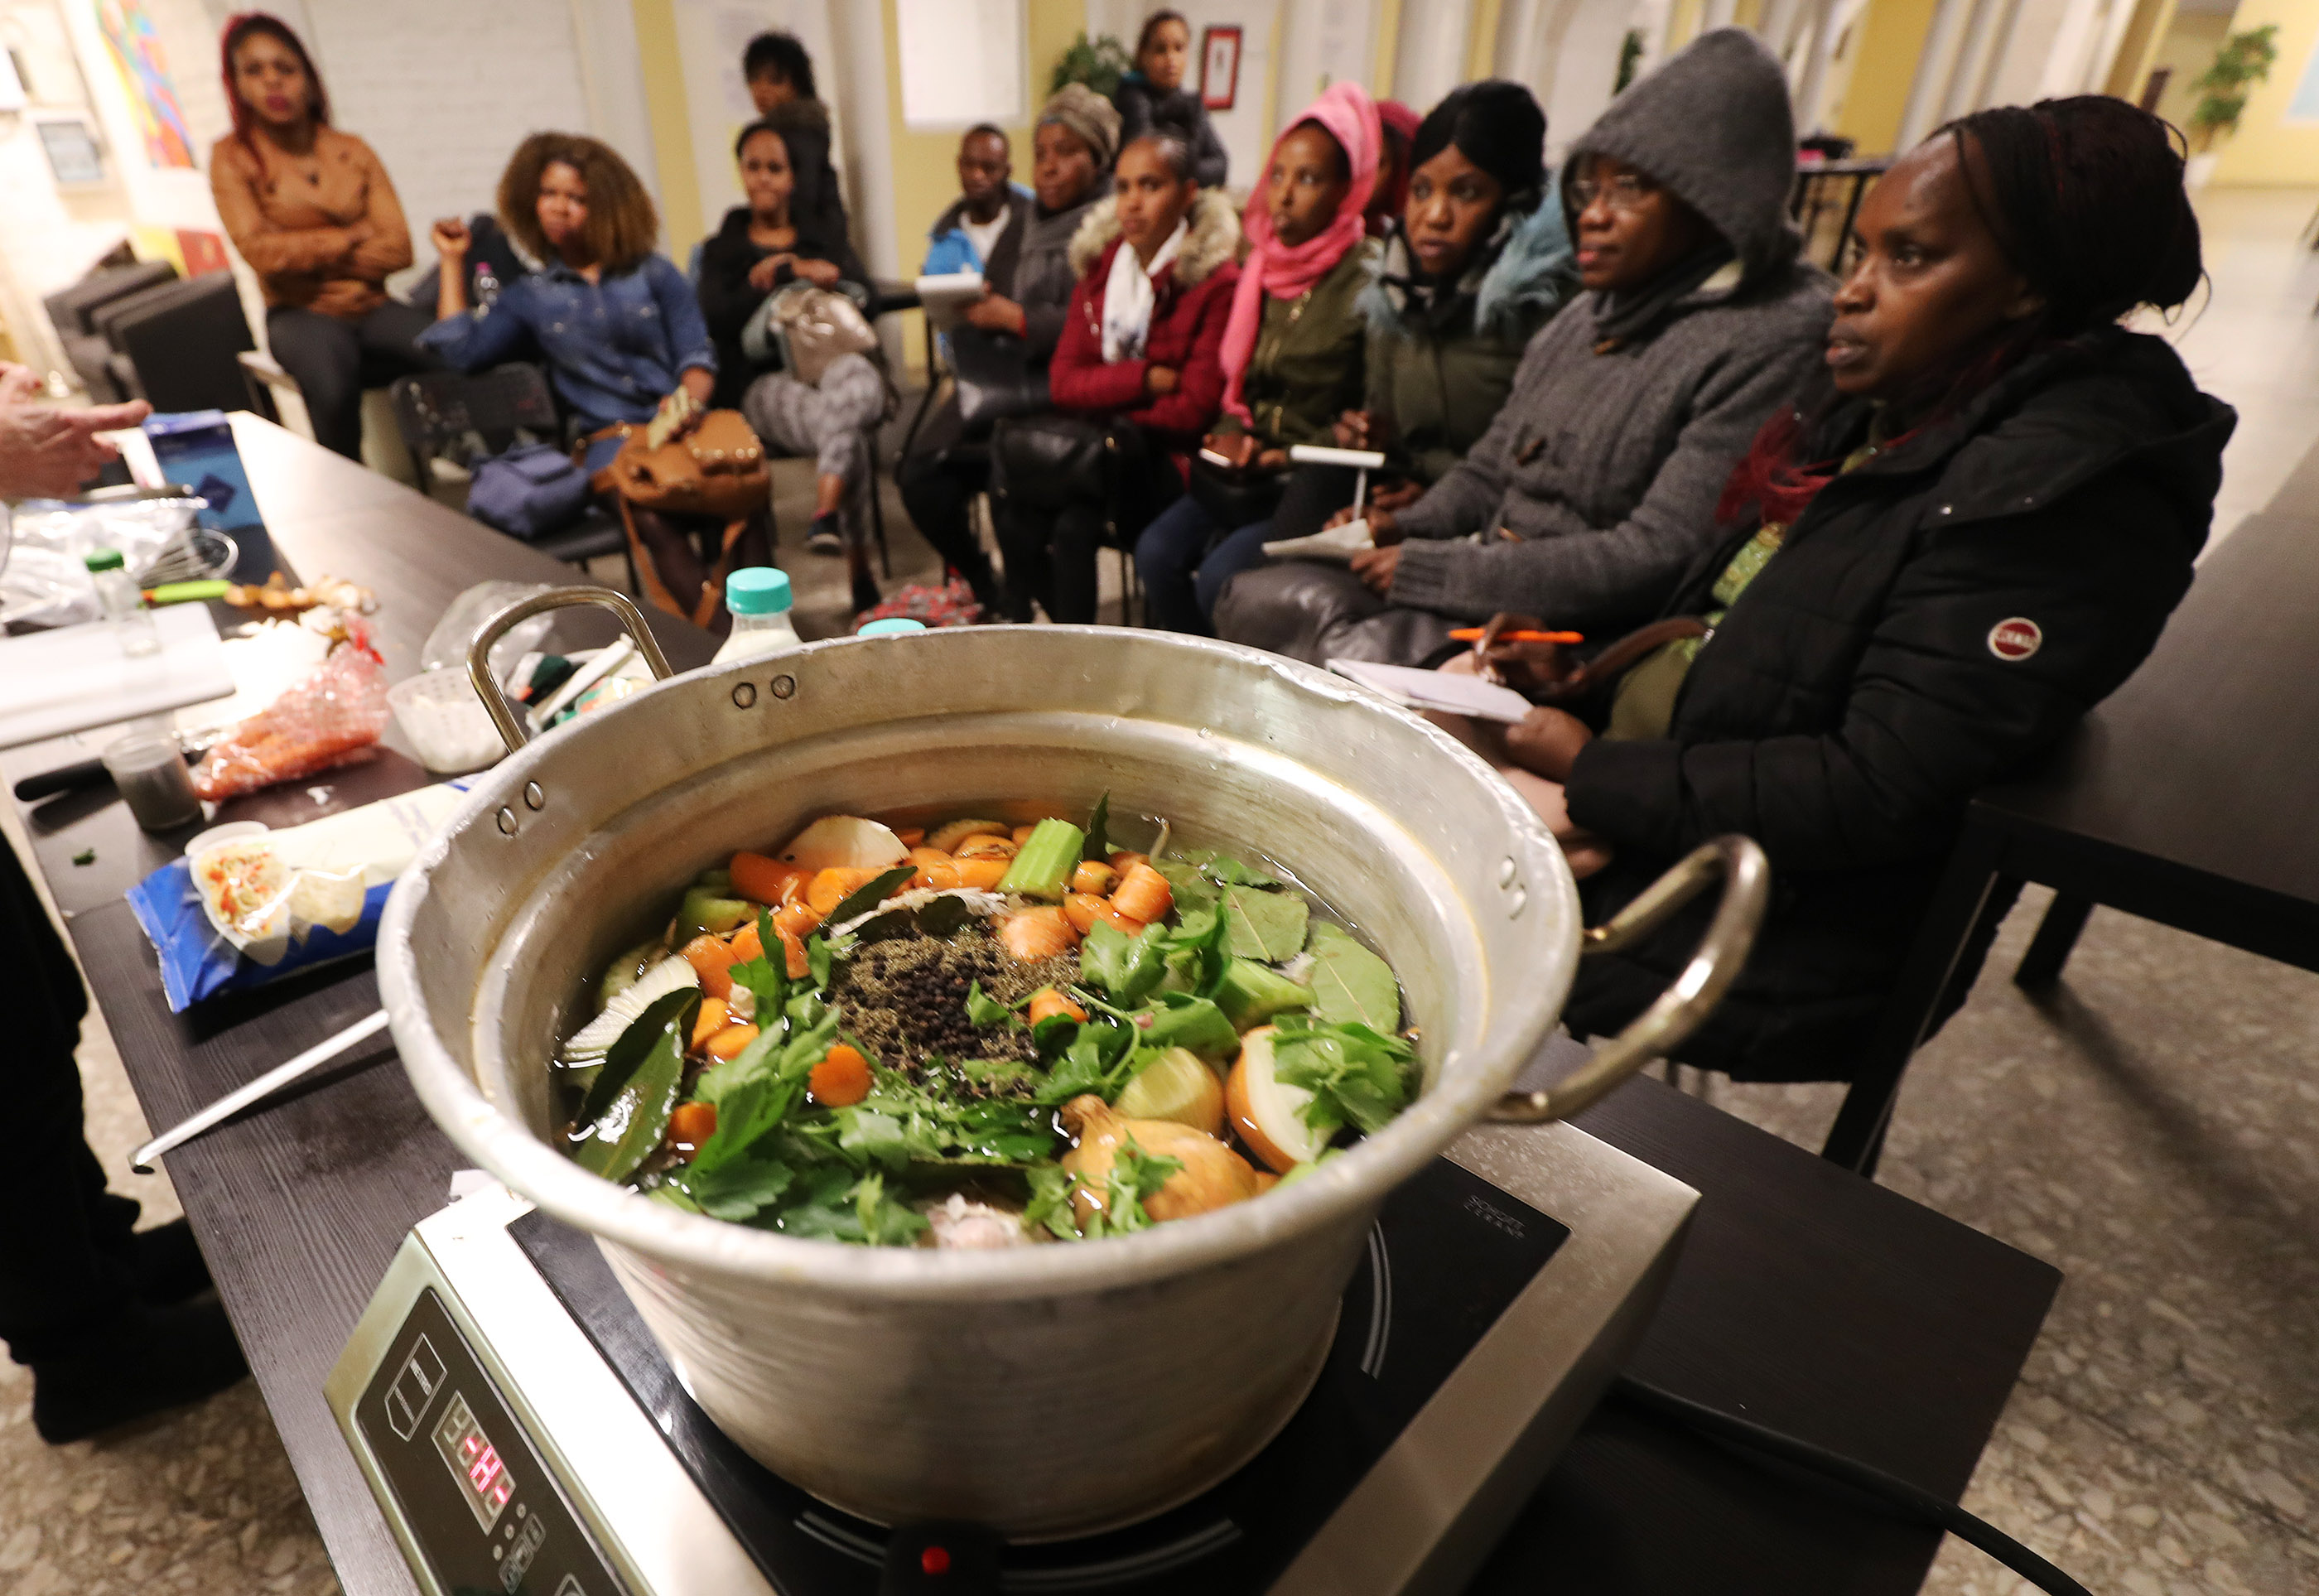 Refugees attend cooking class taught by Latter-day Saint Charities missionaries at St. Paul's Within the Walls Episcopal Church in Rome, Italy on Thursday, March 7, 2019. The Church of Jesus Christ of Latter-day Saints partners with the Catholic church to help refugees.